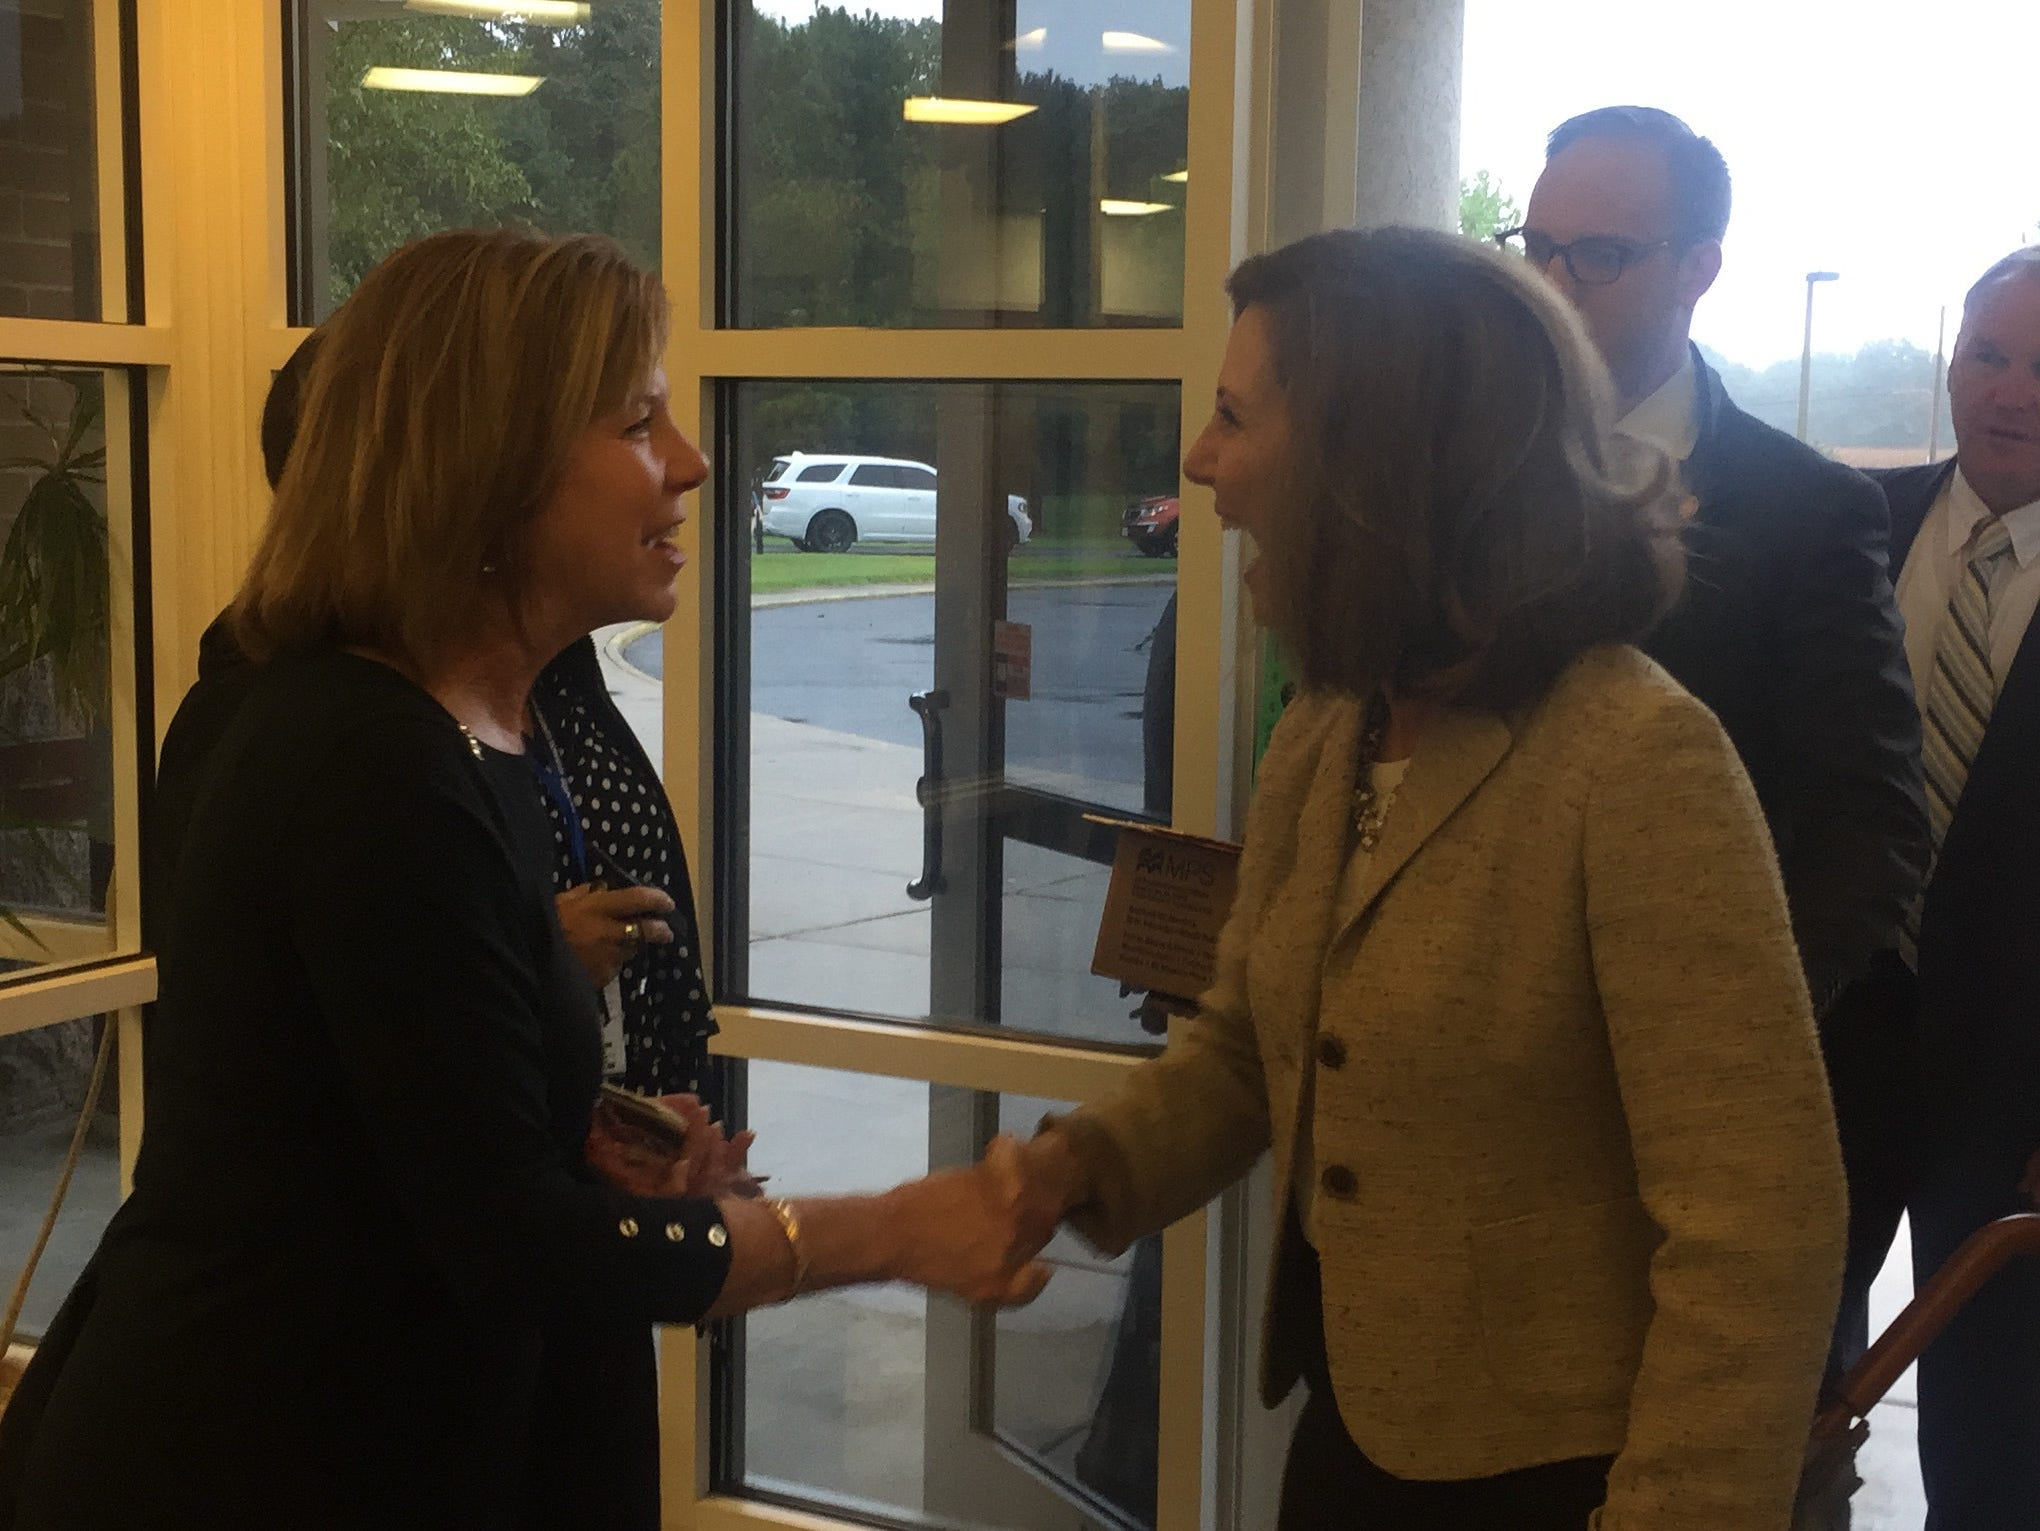 Dawn Byrd, United Way of Virginia's Eastern Shore executive director, left, greets Virginia FIrst Lady Pamela Northam at Accawmacke Elementary School in Daugherty, Virginia on Monday, Sept. 20, 2018.